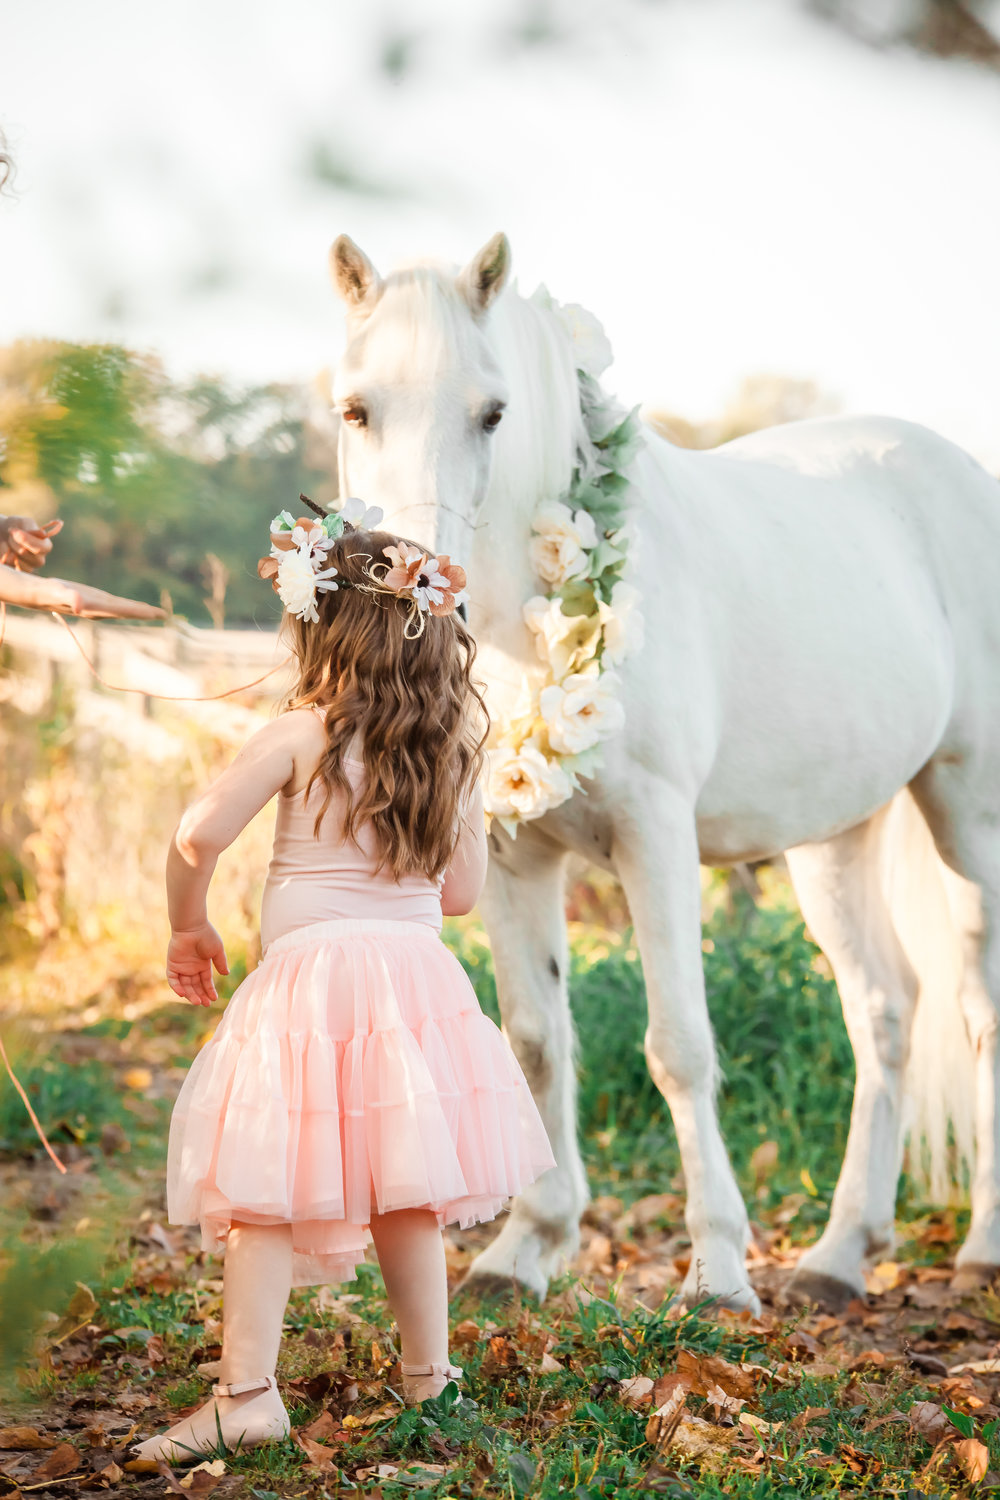 Amy D Photography Barrie Children & Family Photography Unicorn Mini Sessions Unicorn Photo Session- Little Girl Photo Session-24.jpg